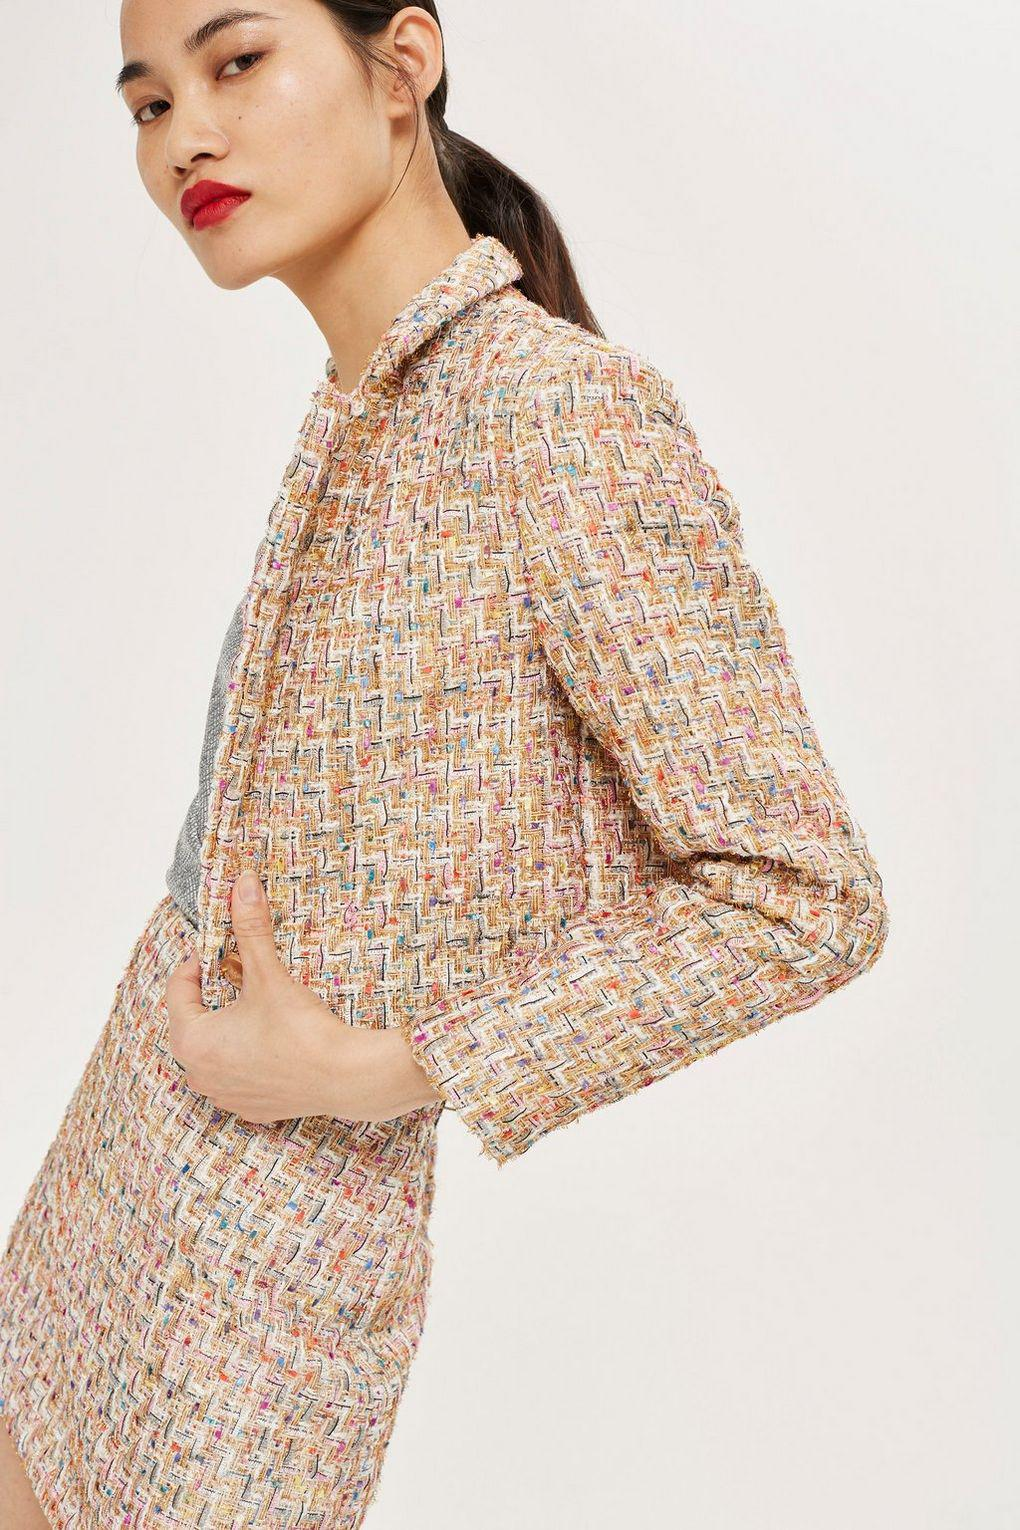 Topshop Synthetic Boucle Skirt